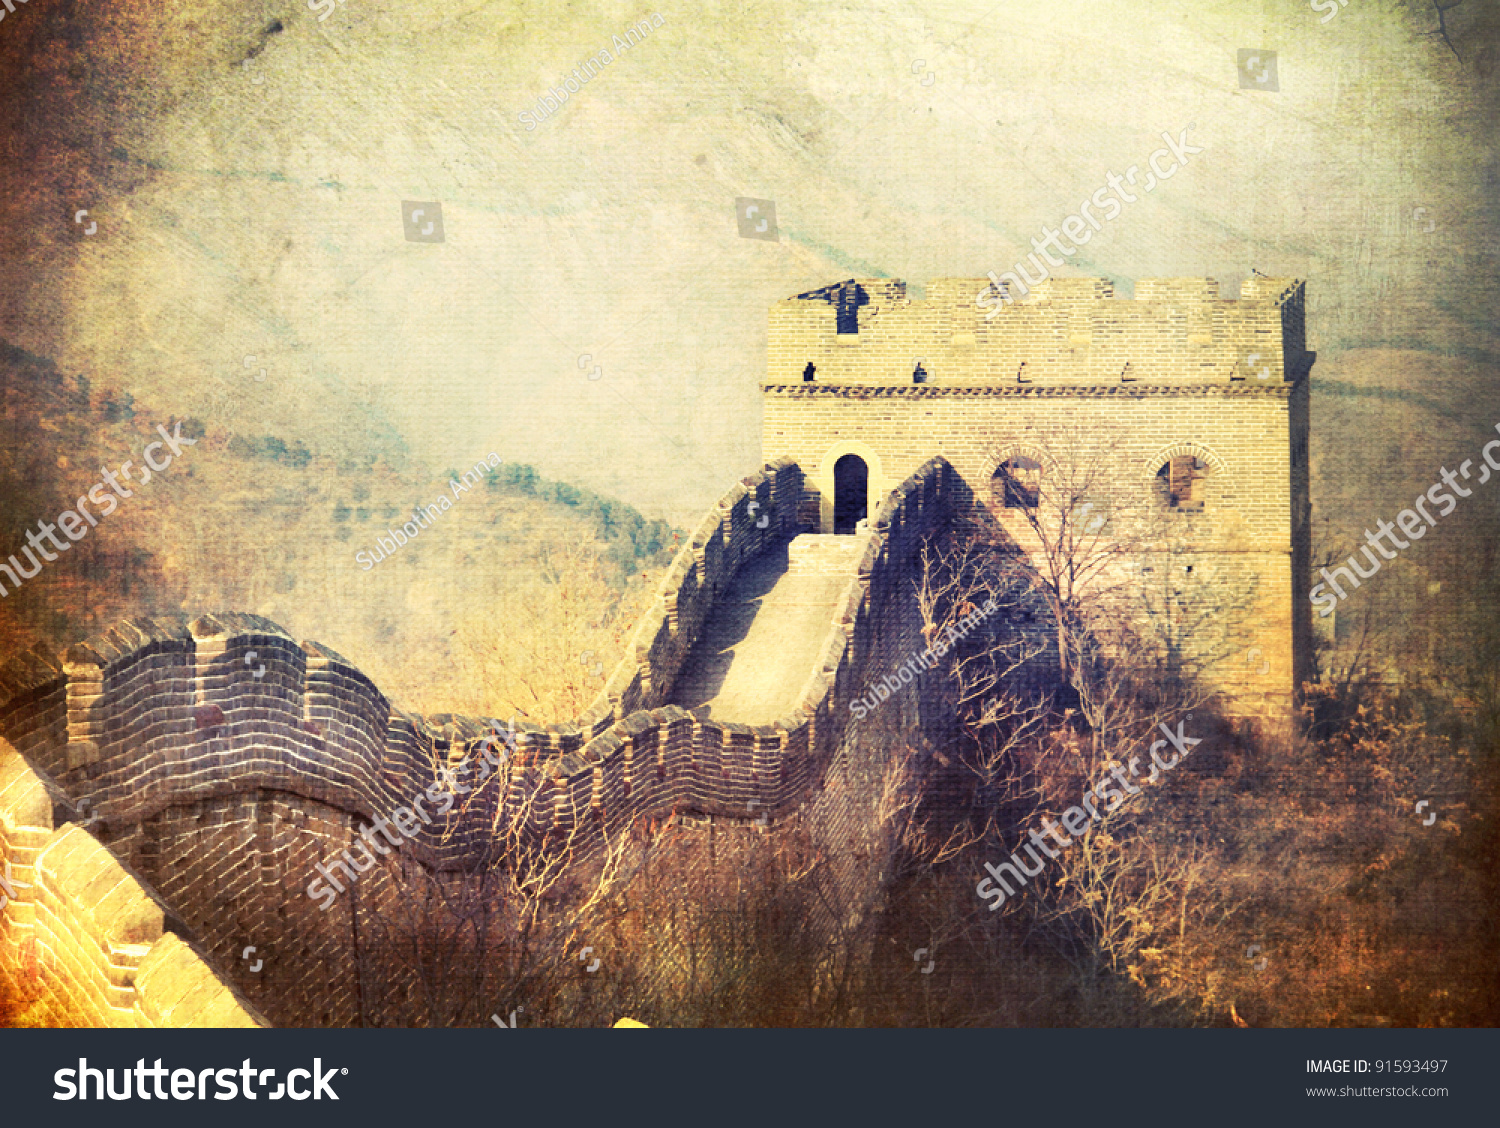 Old Fashioned Great Wall Of China Project Ideas Motif - Wall Art ...